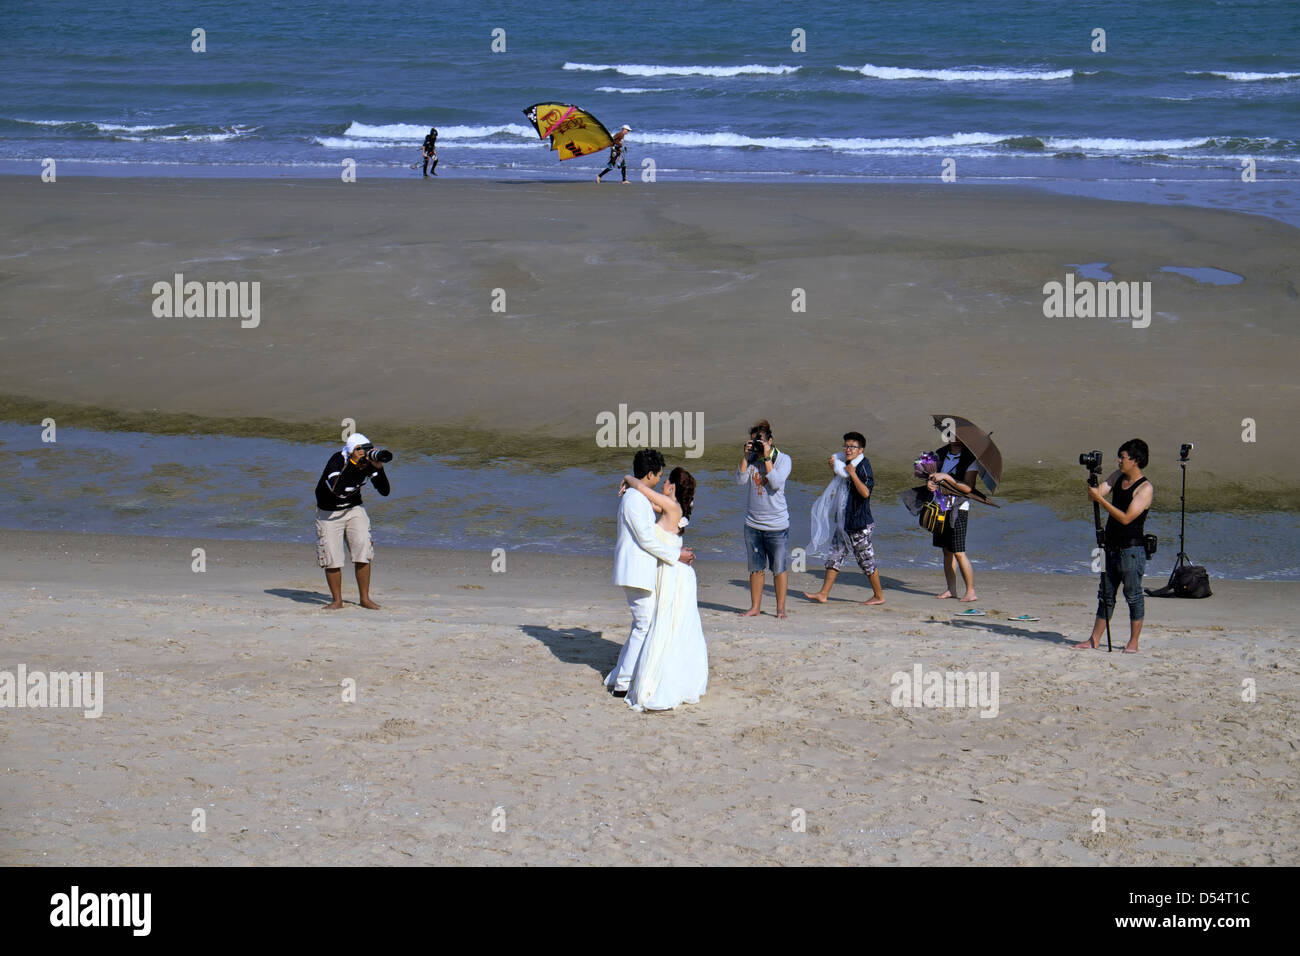 Wedding photographer. Thai beach location used for a wedding shoot with bride, groom photographer and numerous assistants. Stock Photo